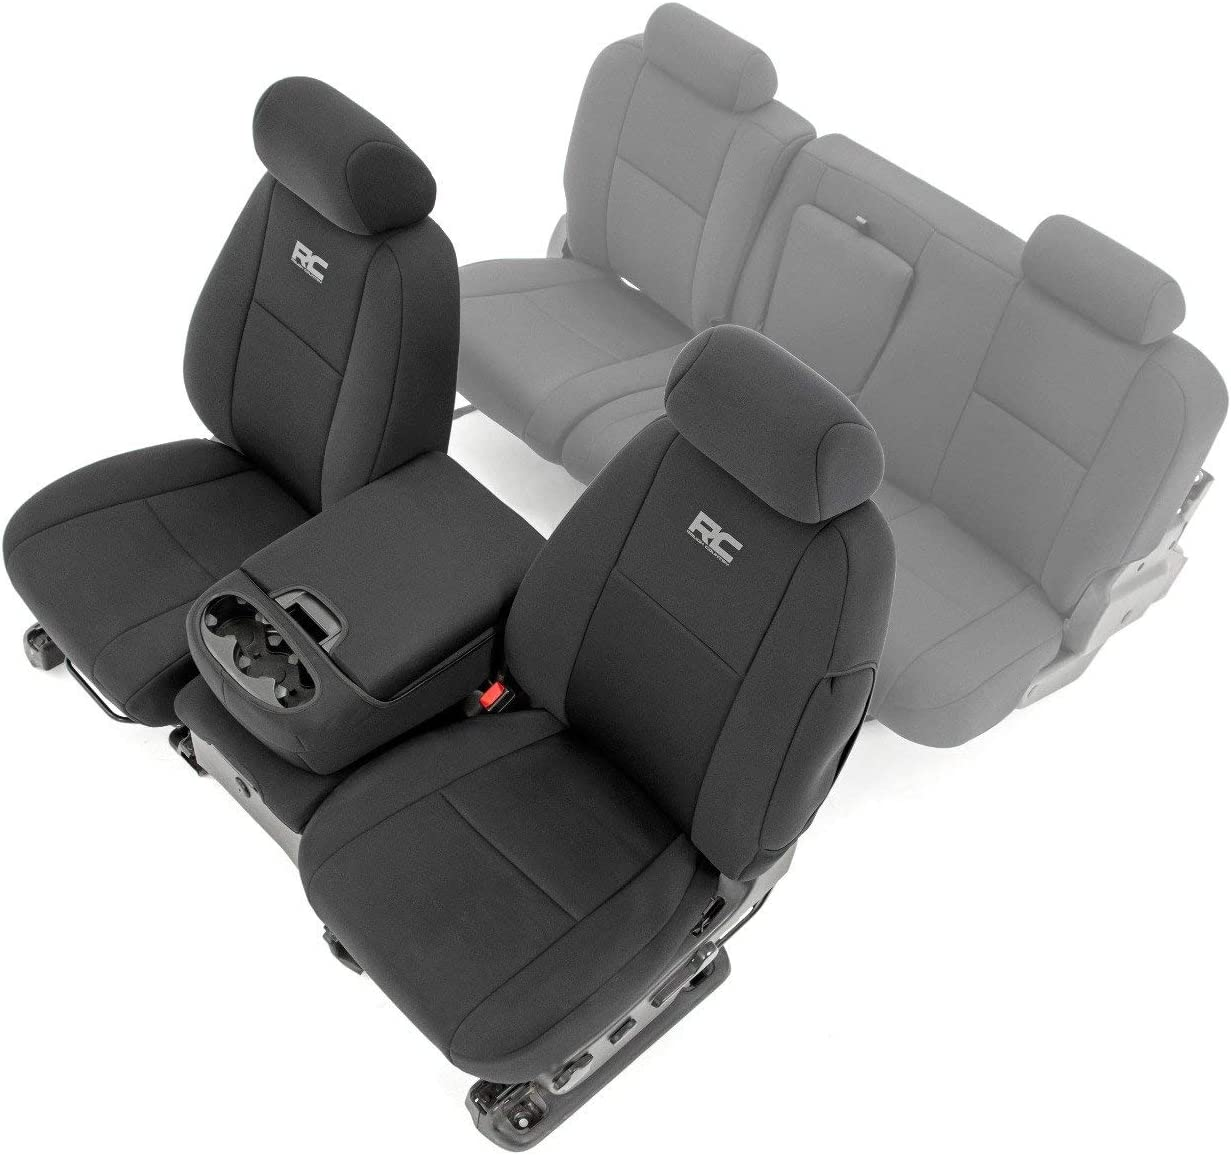 Black 91032 Rough Country Neoprene Front Seat Covers for 07-13 Chevy Silverado 1500//11-13 2500 HD Ext Cab